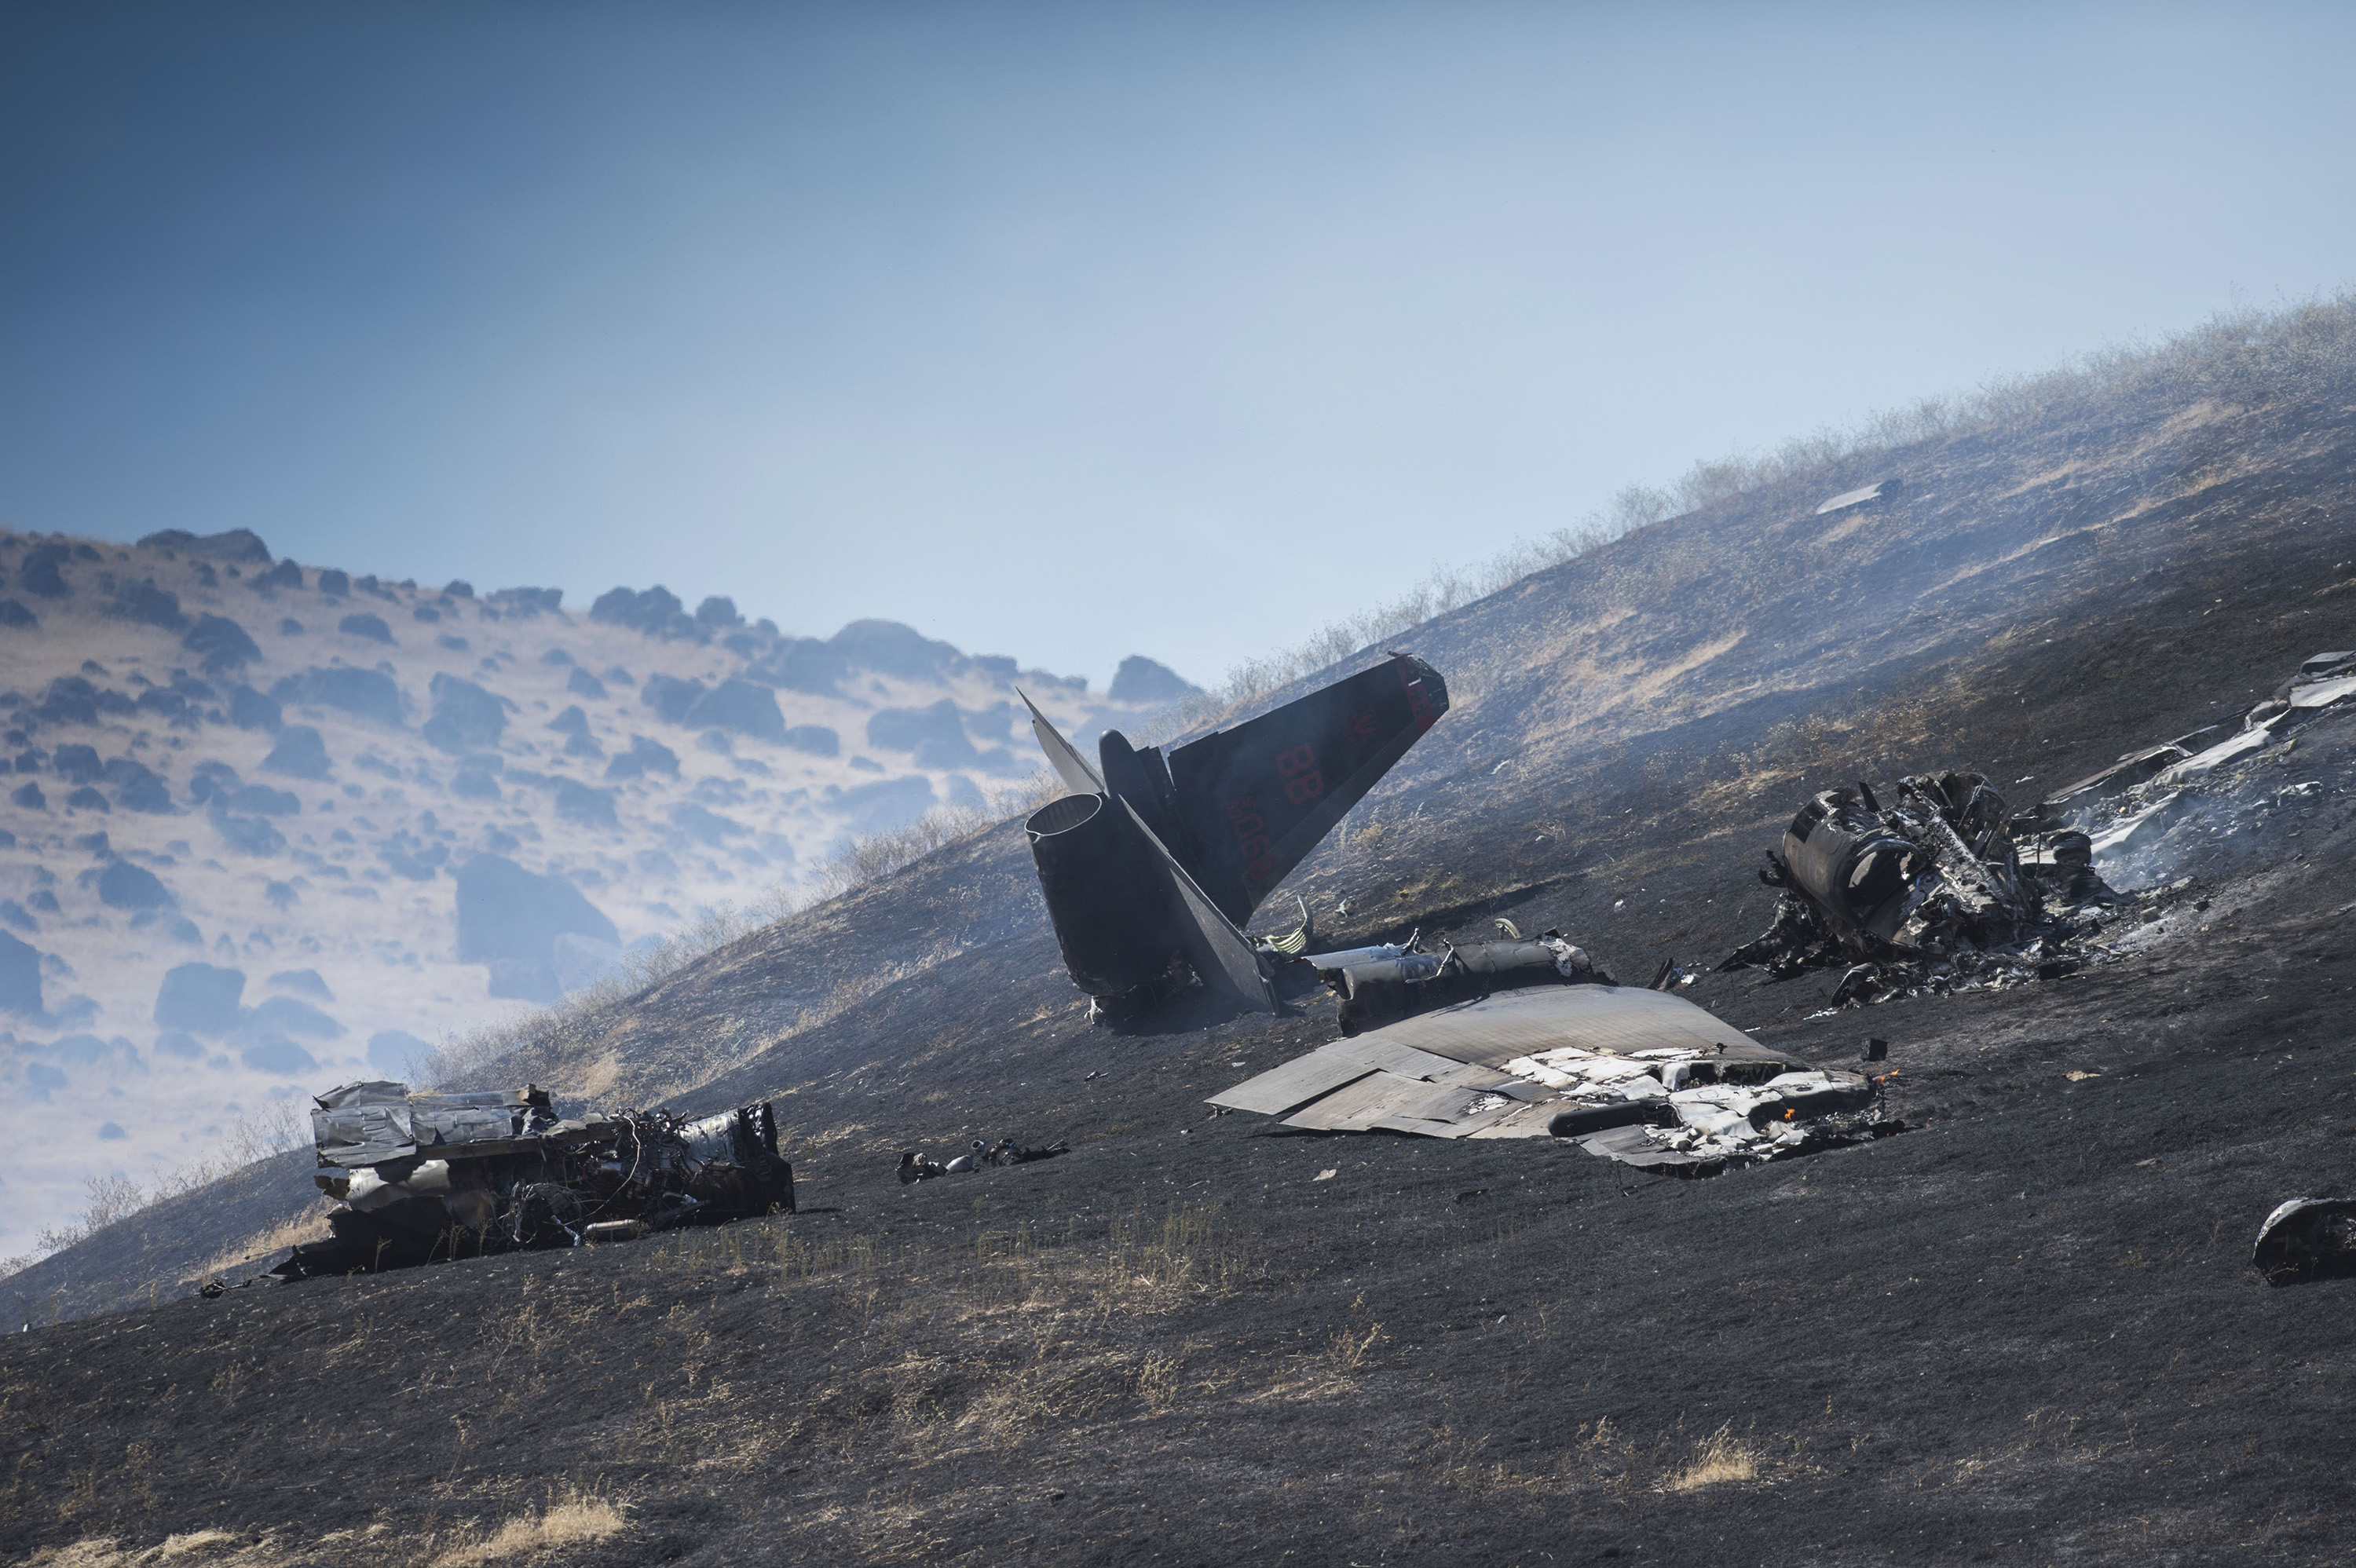 An aircraft assigned to the 1st Reconnaissance Squadron at Beale Air Force Base and on a training mission went down on the lower slopes of the Sutter Buttes on Sept. 20, 2016.